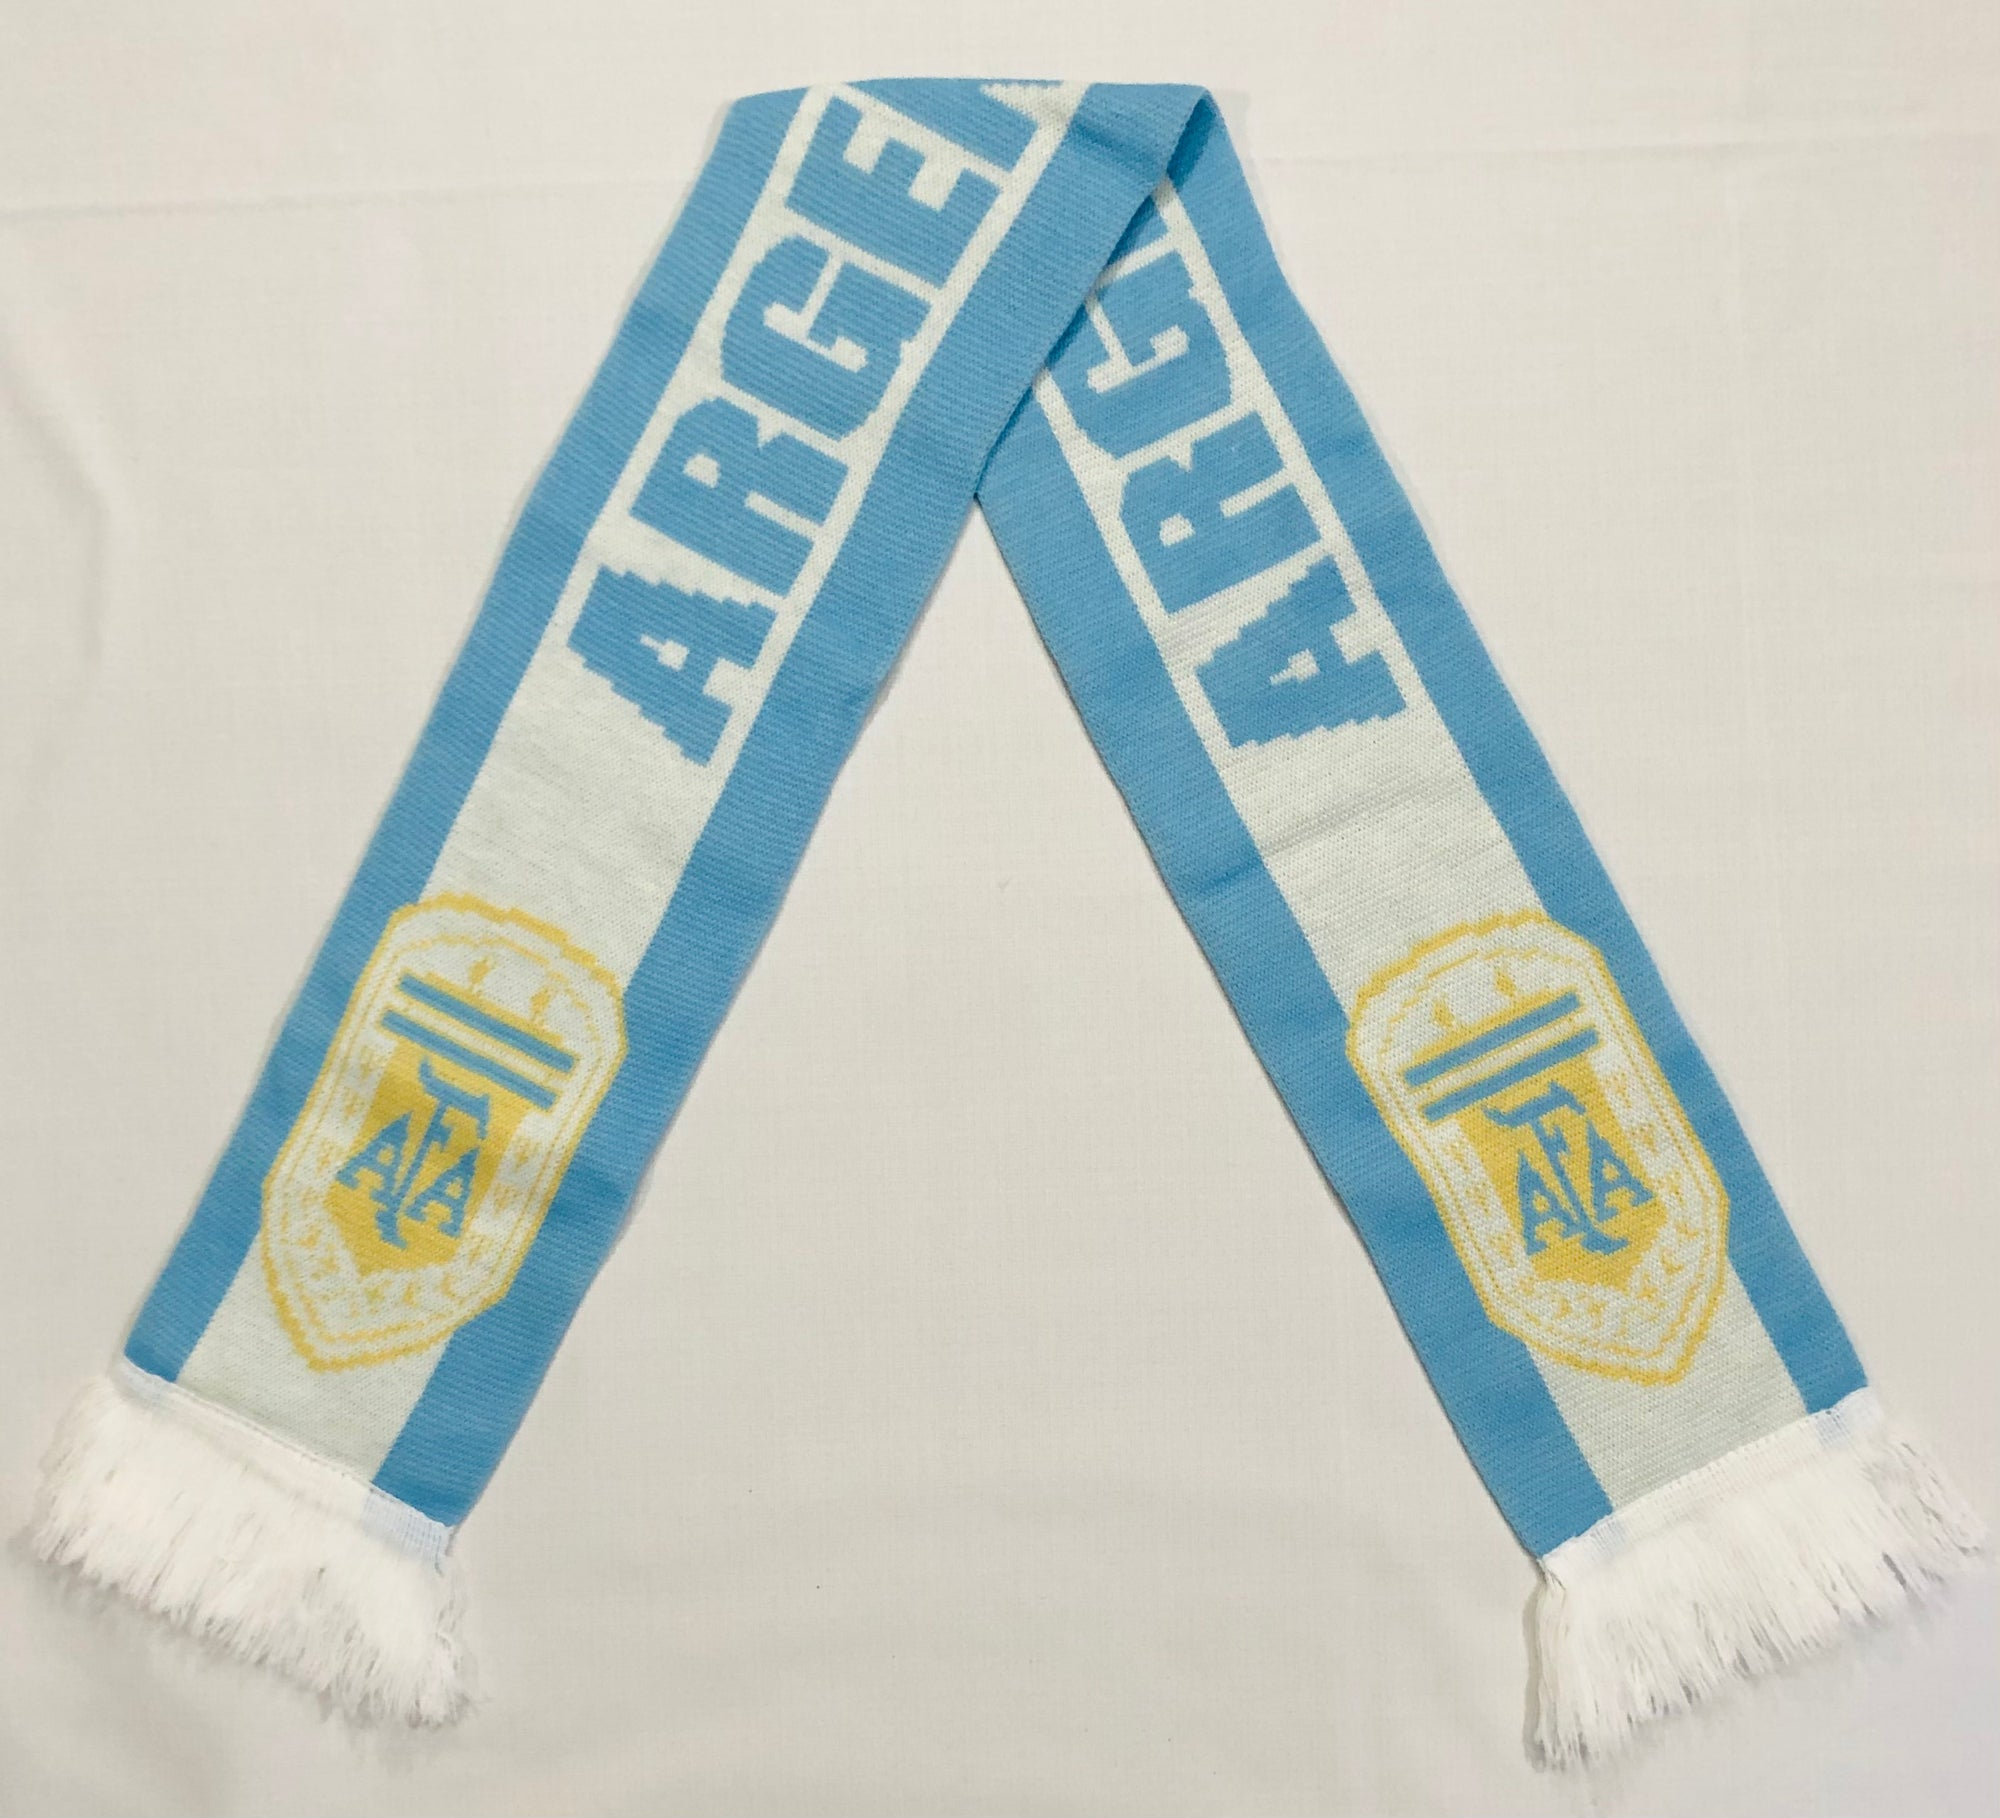 Argentina Supporter's Scarf